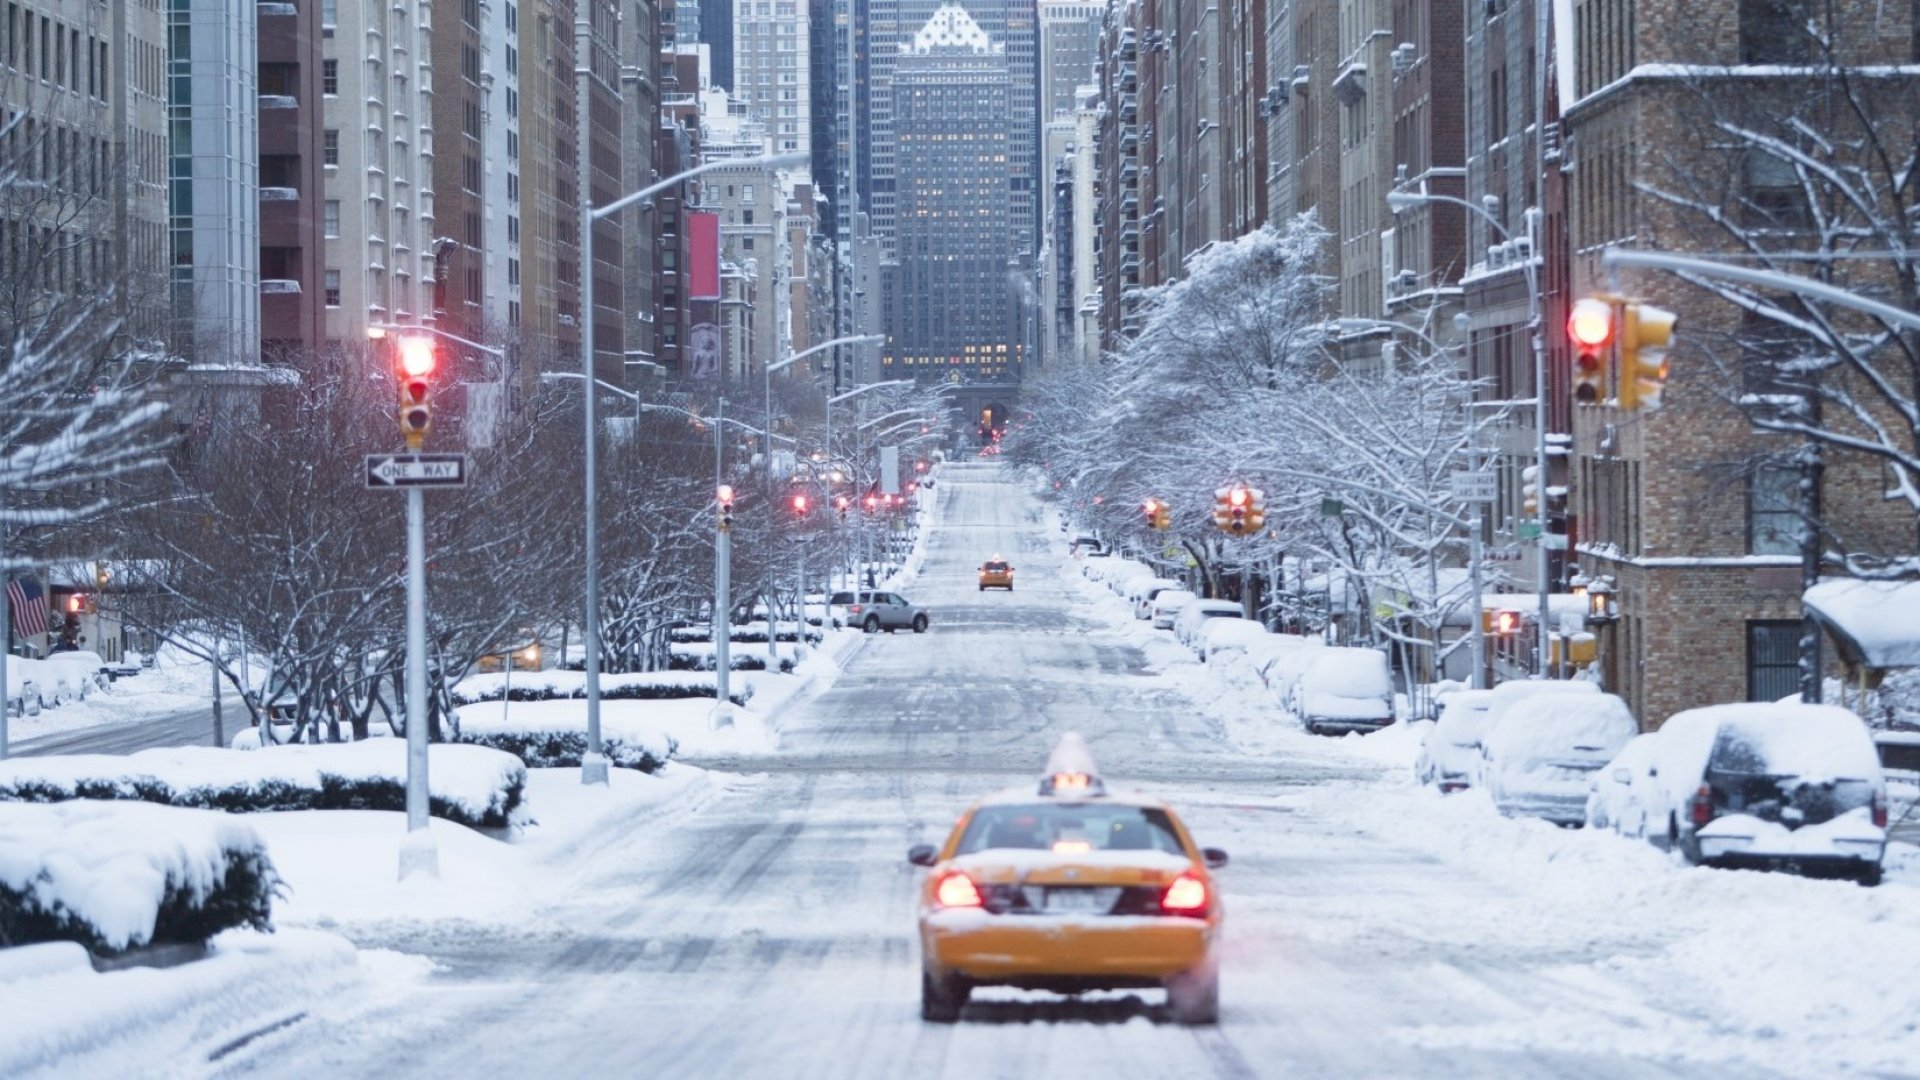 9 Ways a Snow Day Can Radically Improve Your Entire Life